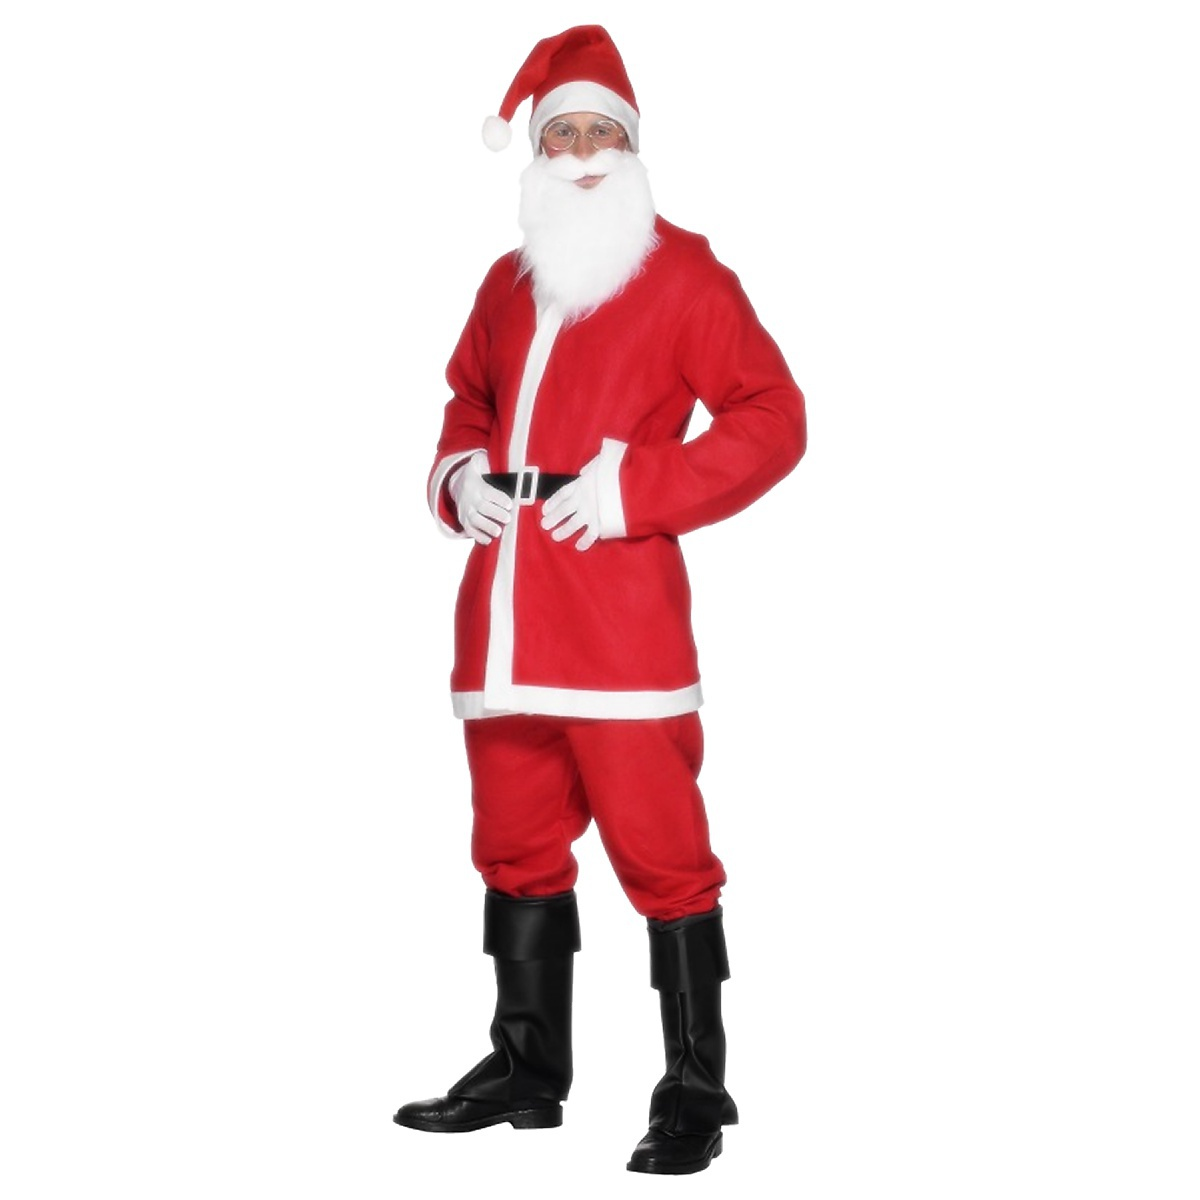 Smiffys Economy Santa Suit Costume Adult Cheap Claus Flannel Christmas Fancy Dress at Sears.com